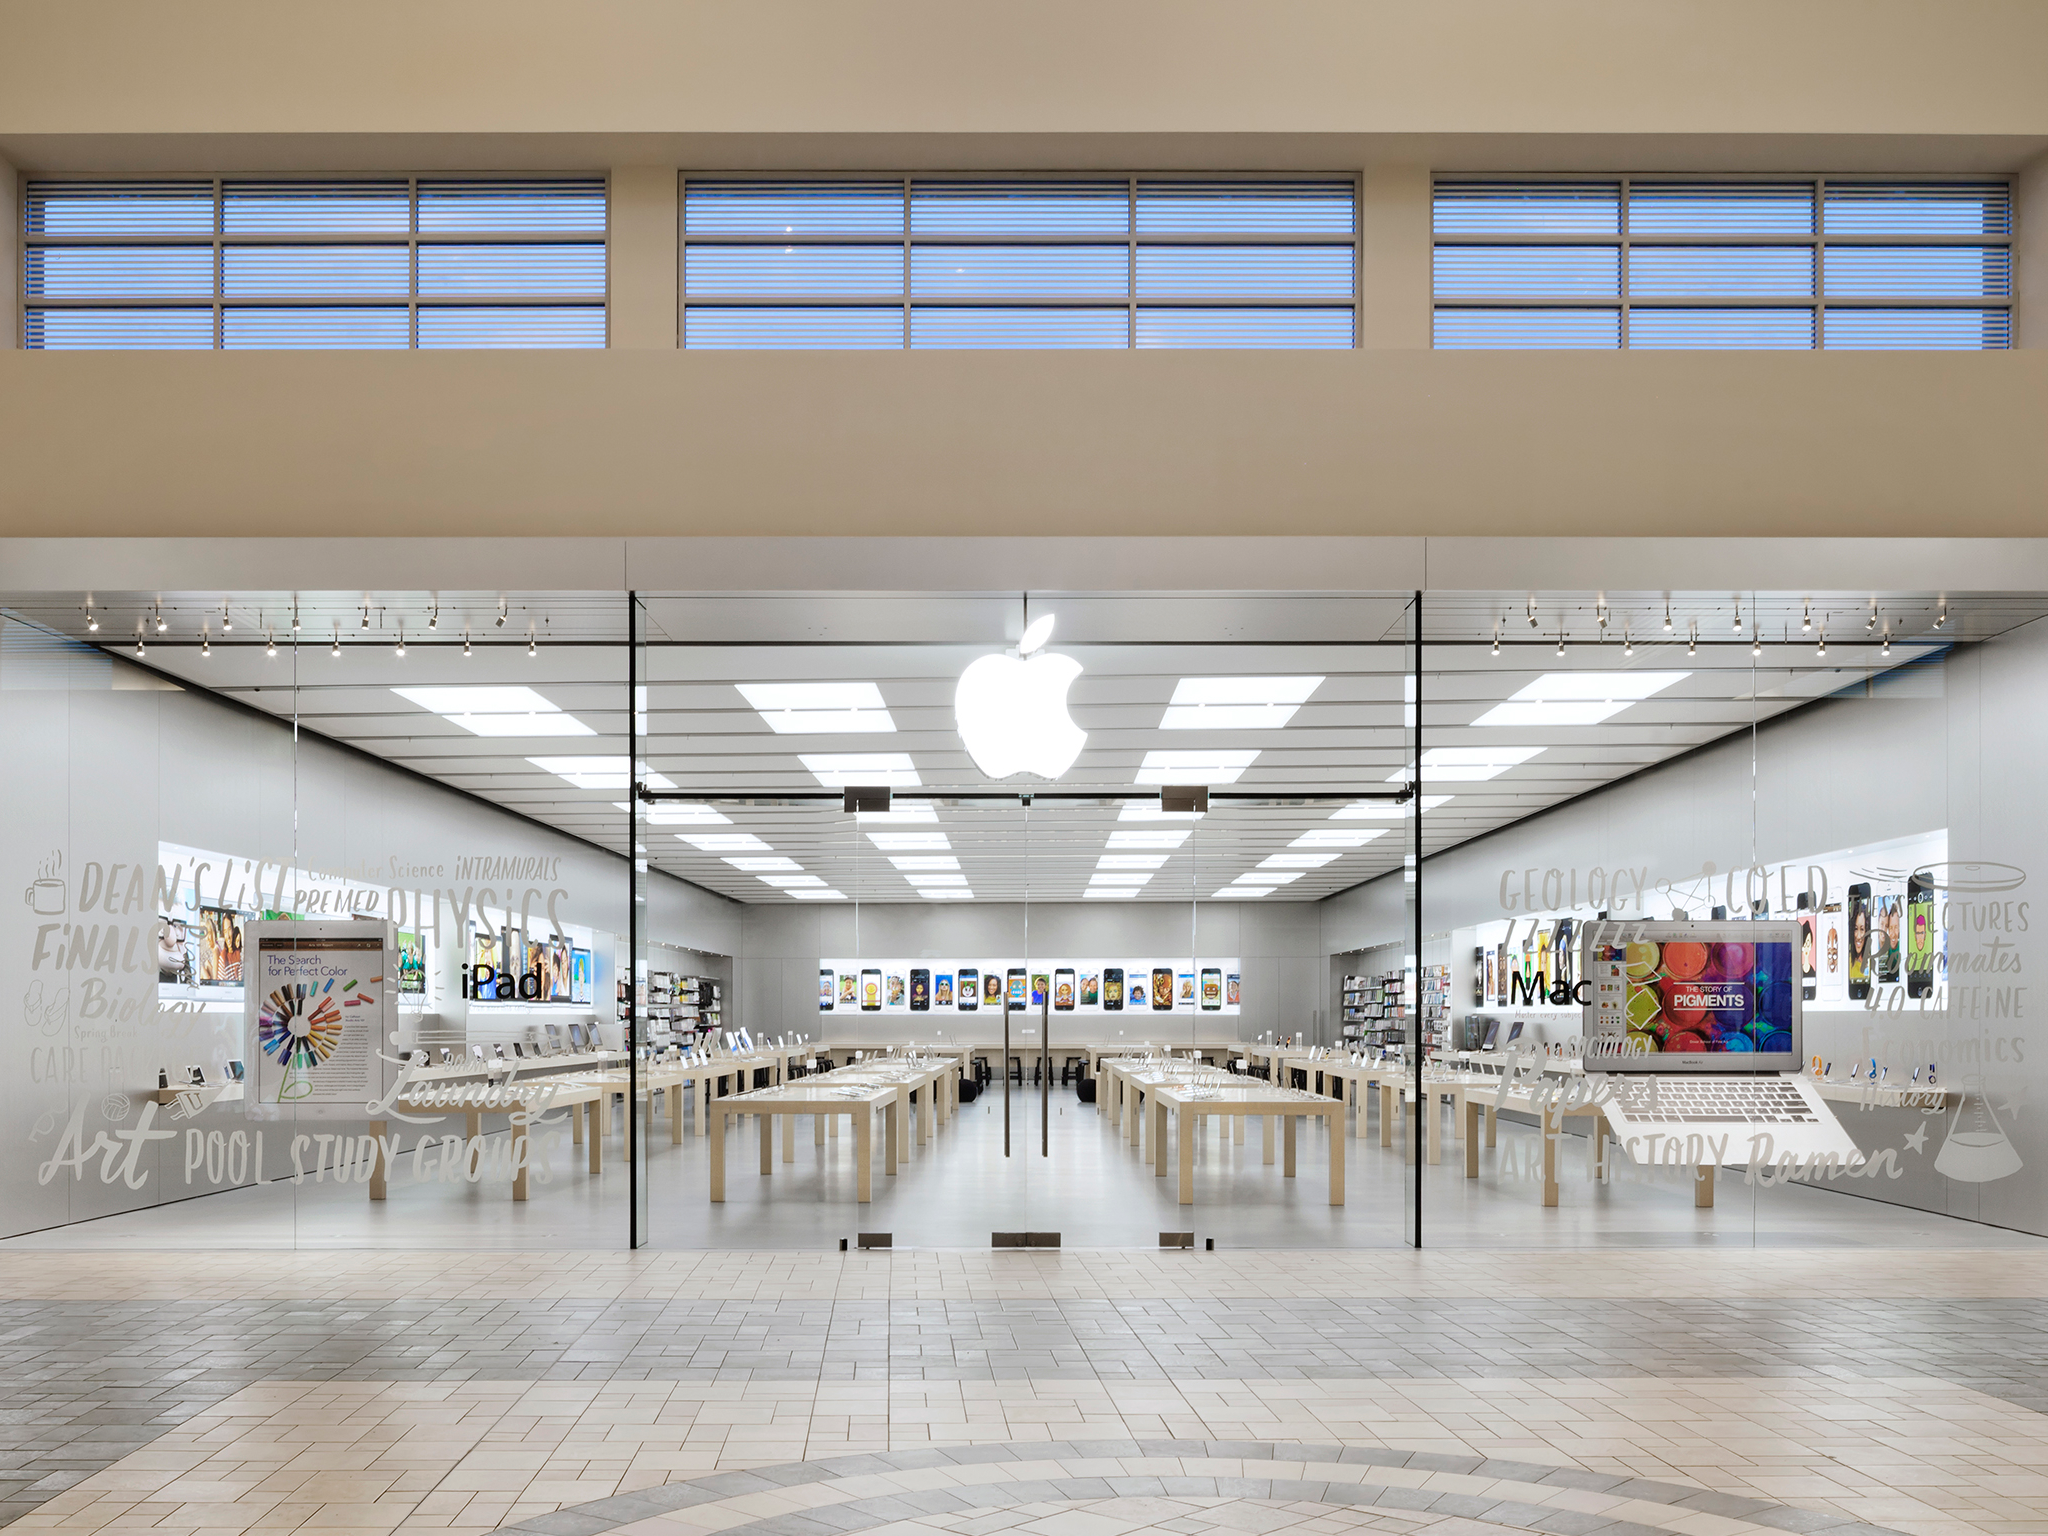 The Apple Store is located in Altamonte Mall on the upper level of the JC Penney wing, near Barnes & Noble. Altamonte Mall is located a mile east of I-4 in central Altamonte Springs. Early morning appointments: use the side mall entrance near Elephant Bar.